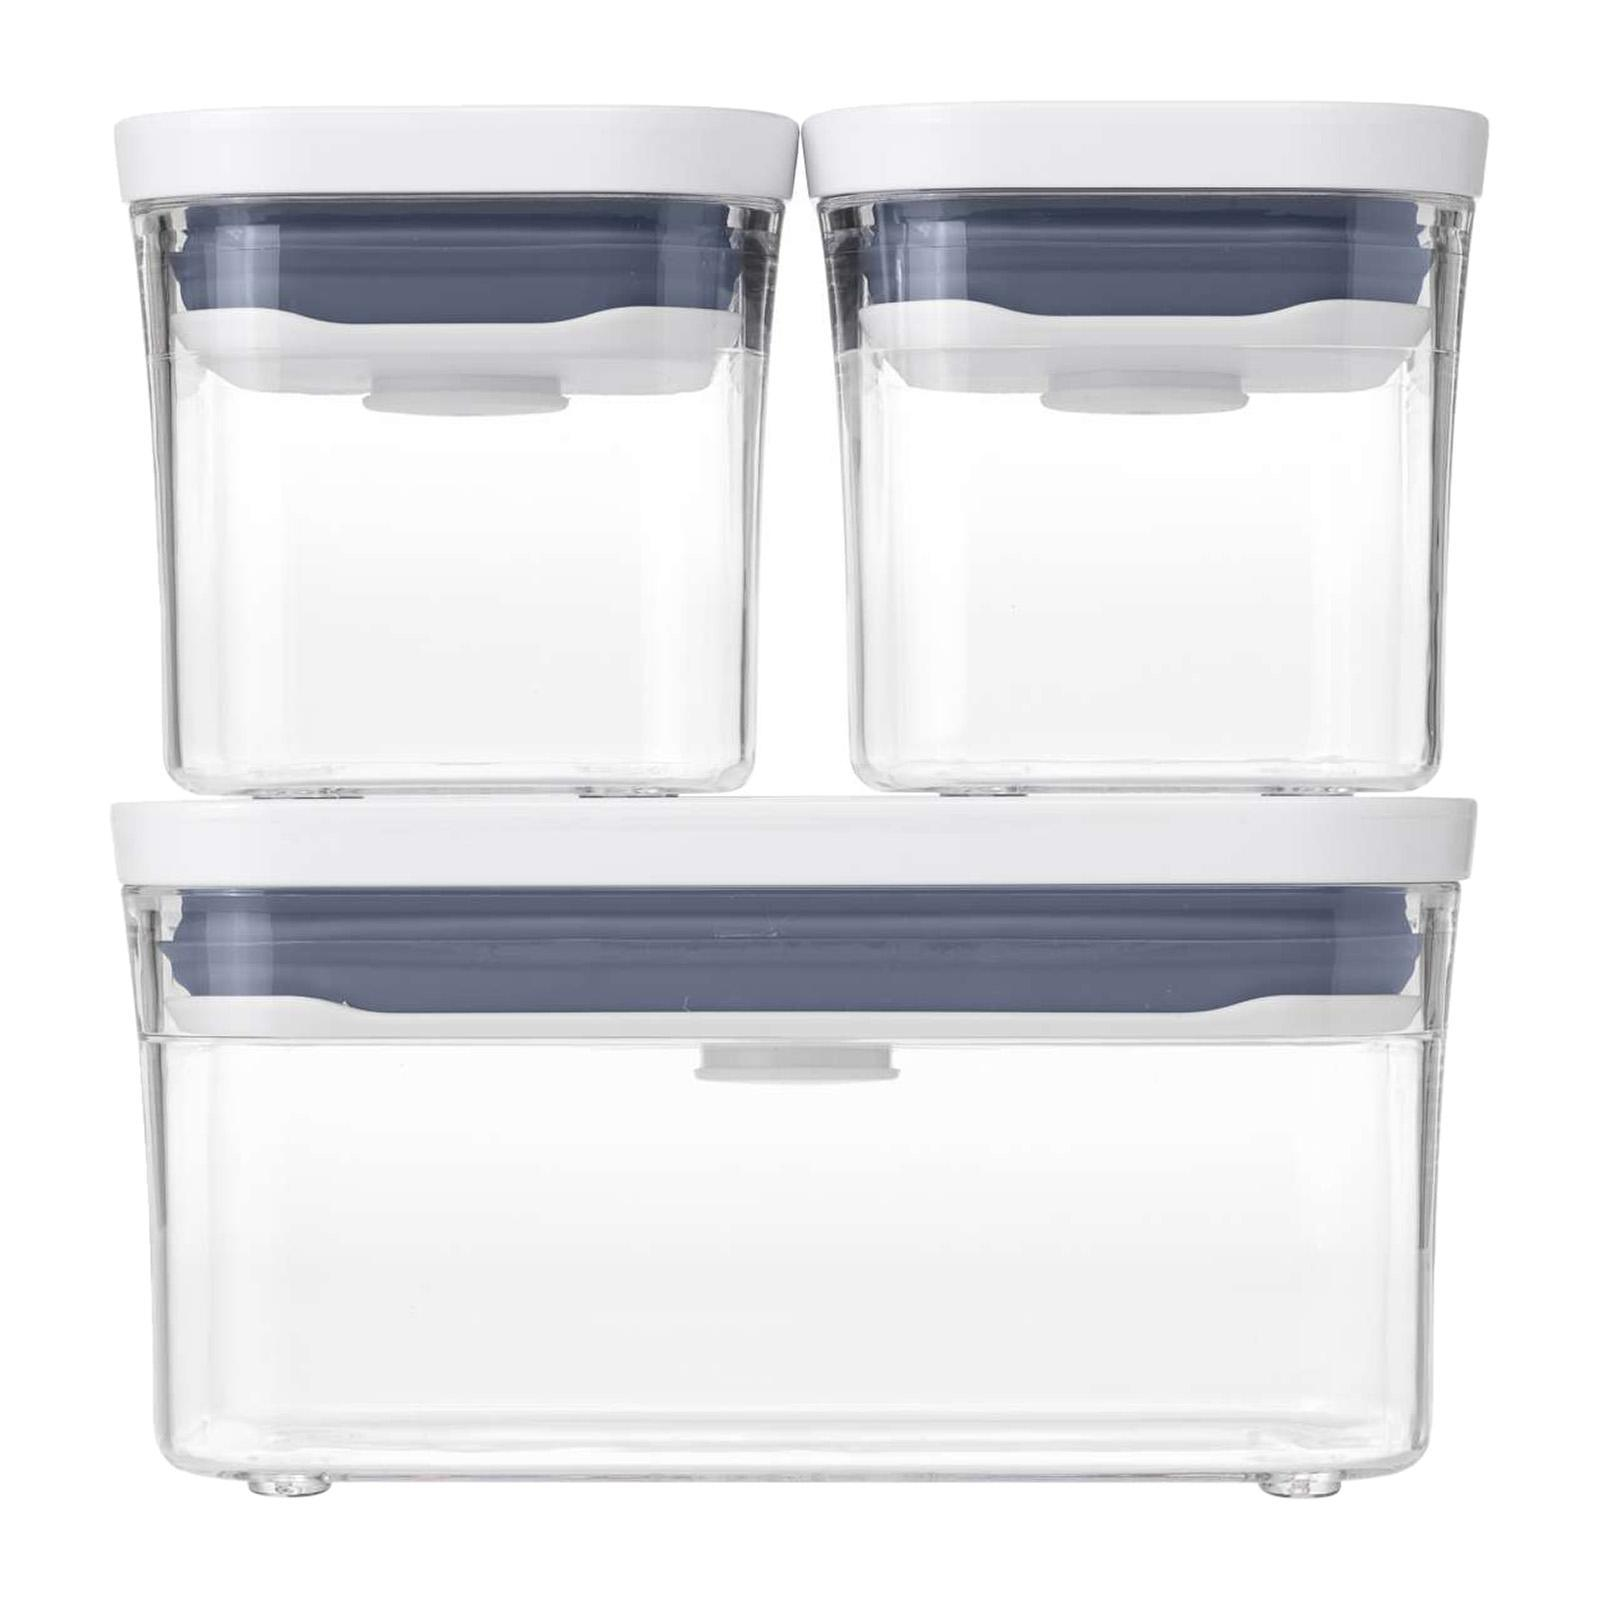 Oxo Good Grips 3 PCS Pop Container 0.2L X2 And 0.4L